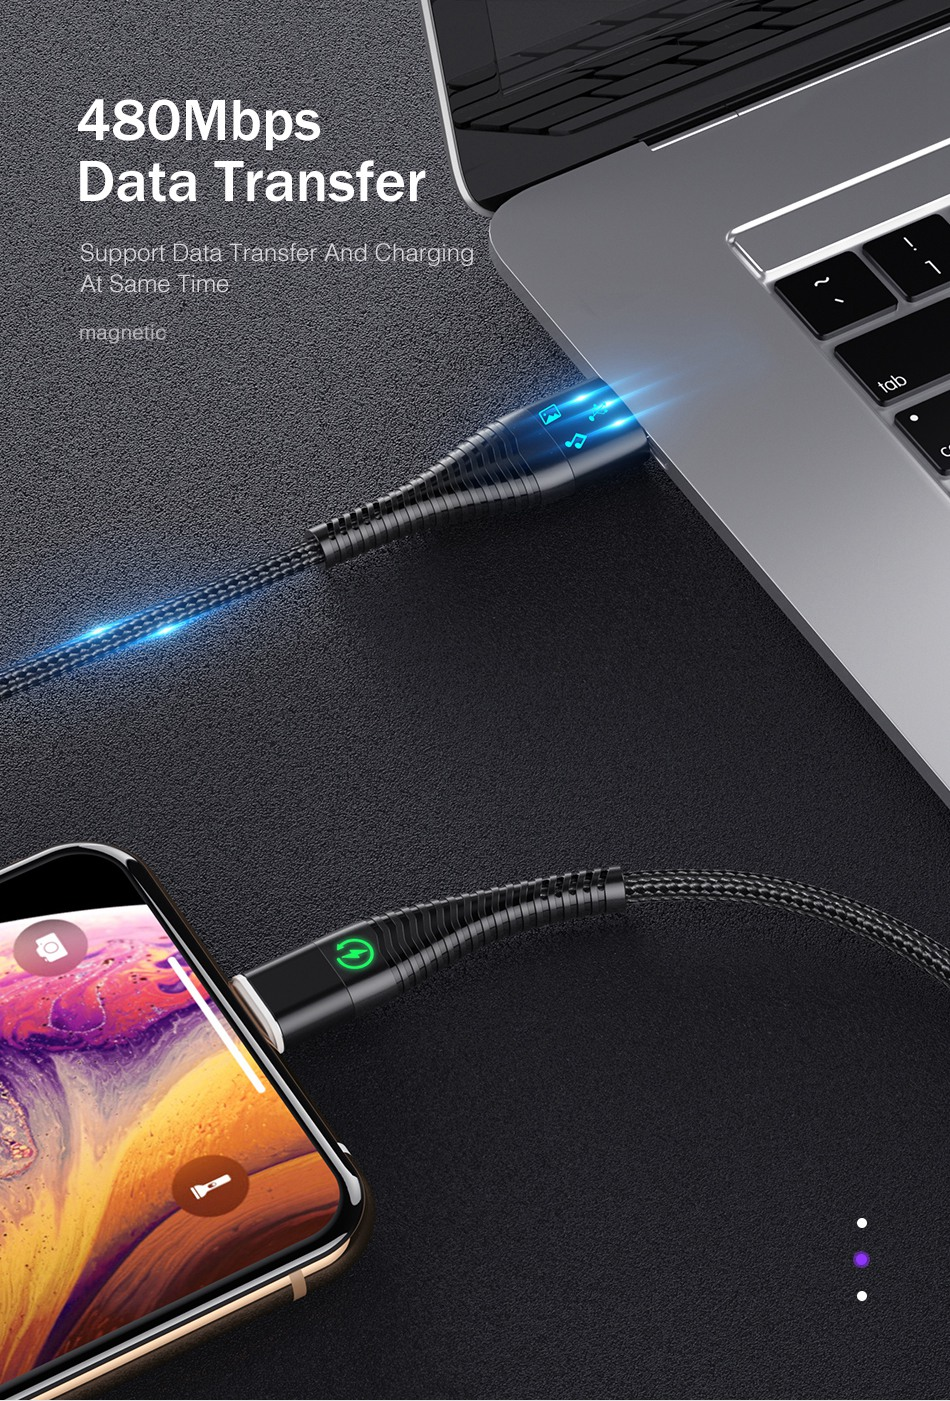 ROCK LED Light Magnetic Charge Cable Micro USB Cable For iPhone XR XS Max X Magnet Charger USB Type C Charging Wire Cord 1M 2M 15